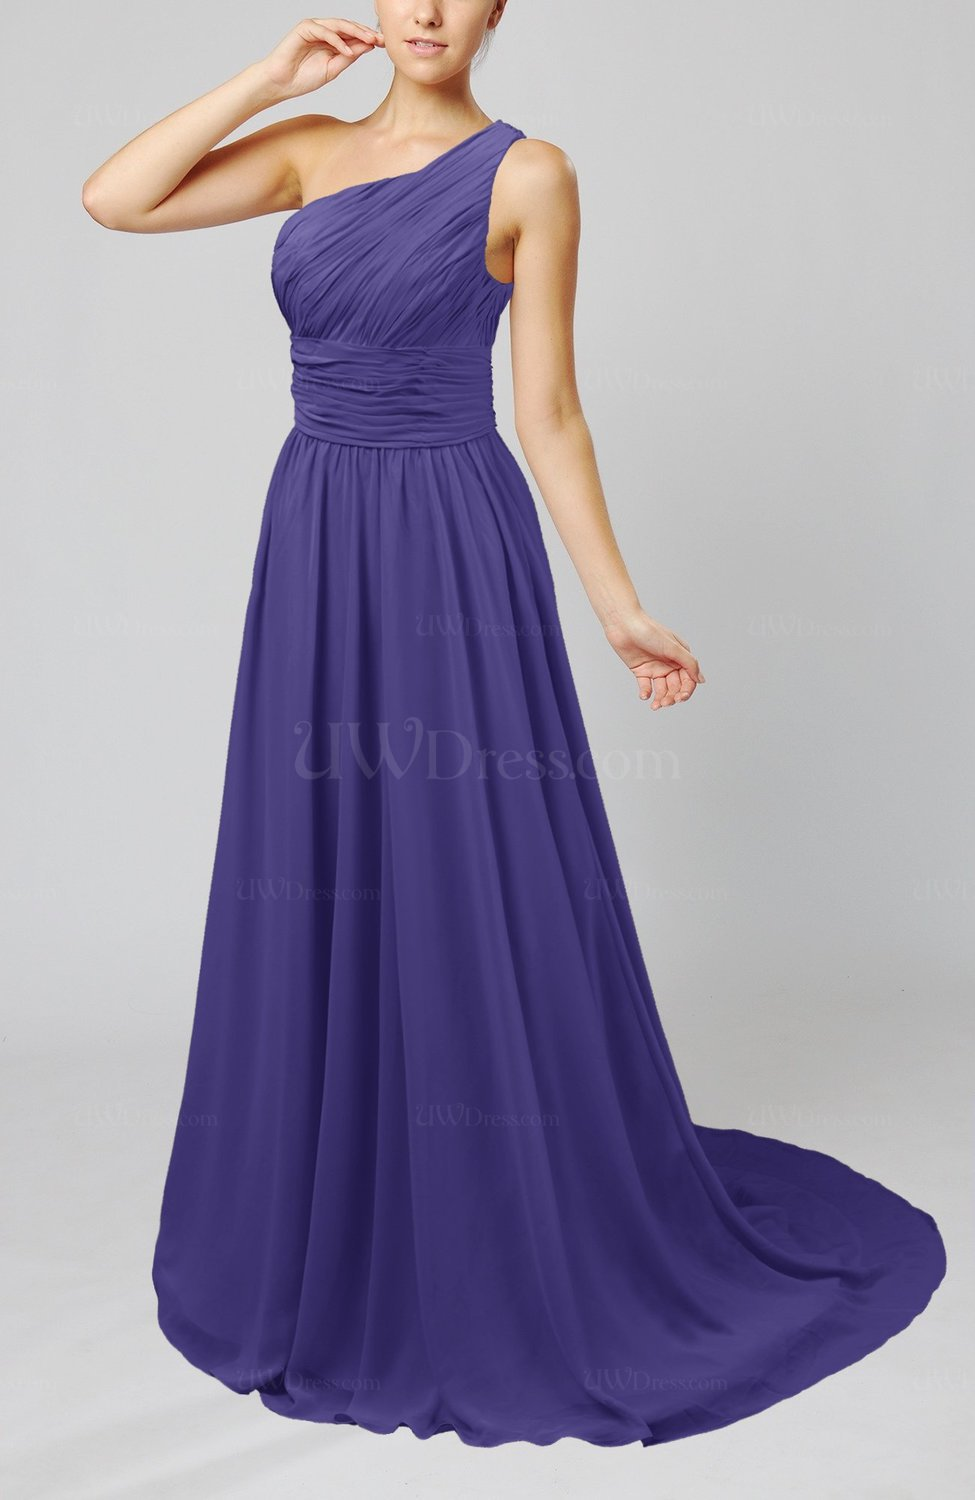 d6ed017d28 Royal Purple Cinderella Asymmetric Neckline Sleeveless Half Backless Court  Train Bridesmaid Dresses (Style D13872)